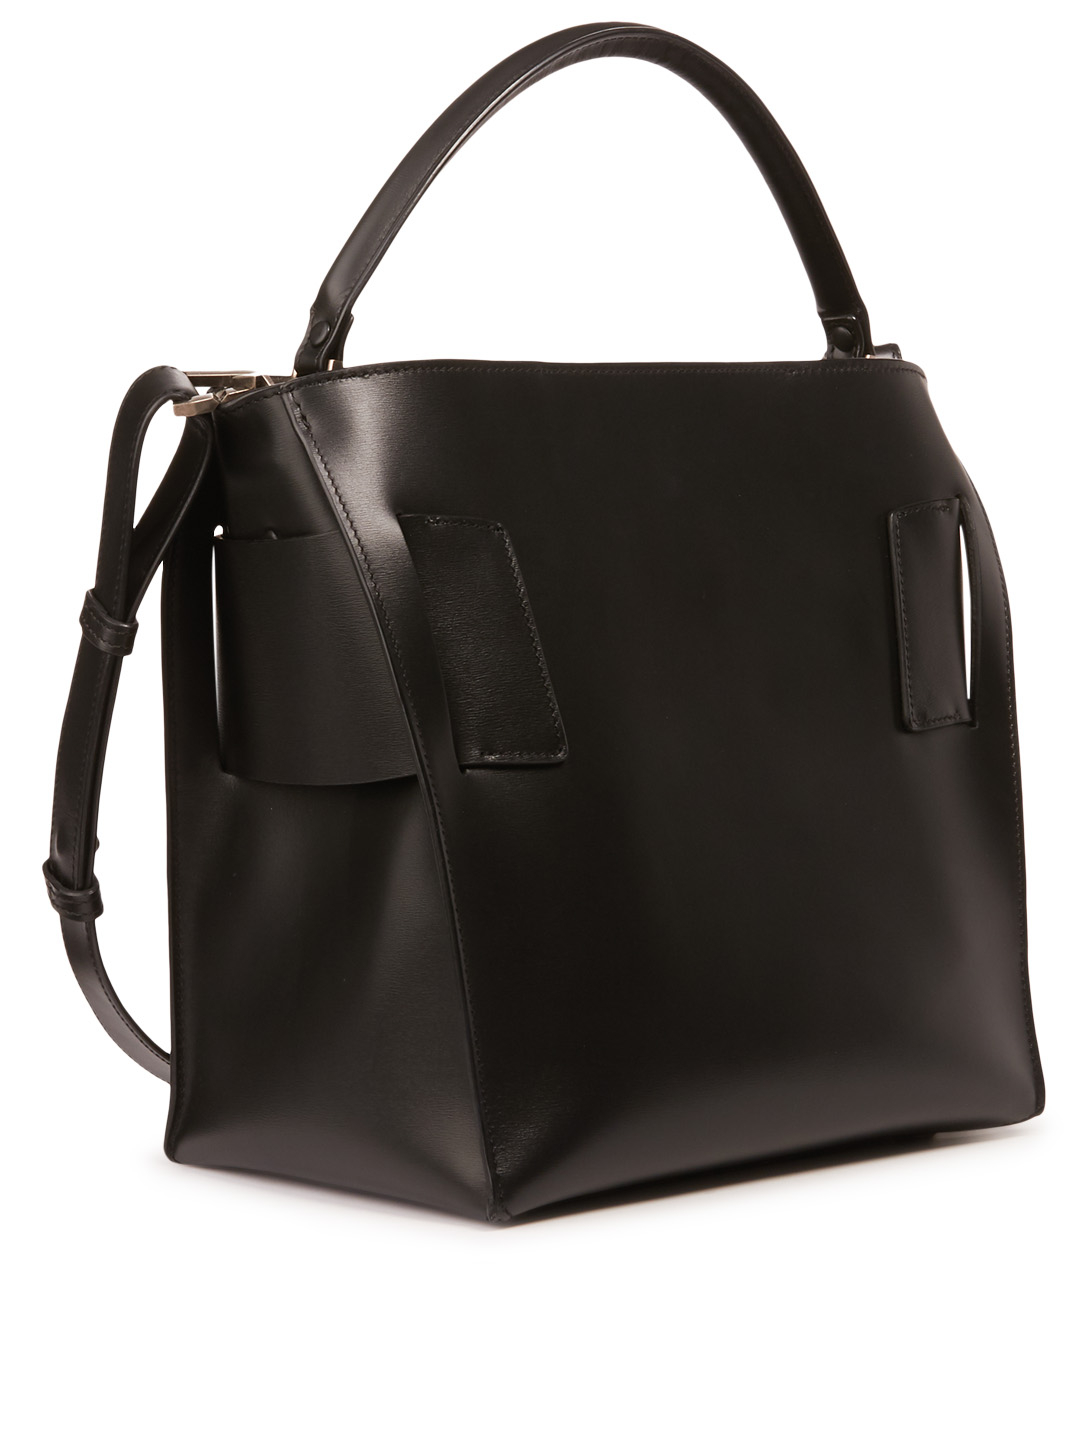 BOYY Devon Leather Hobo Bag Womens Black